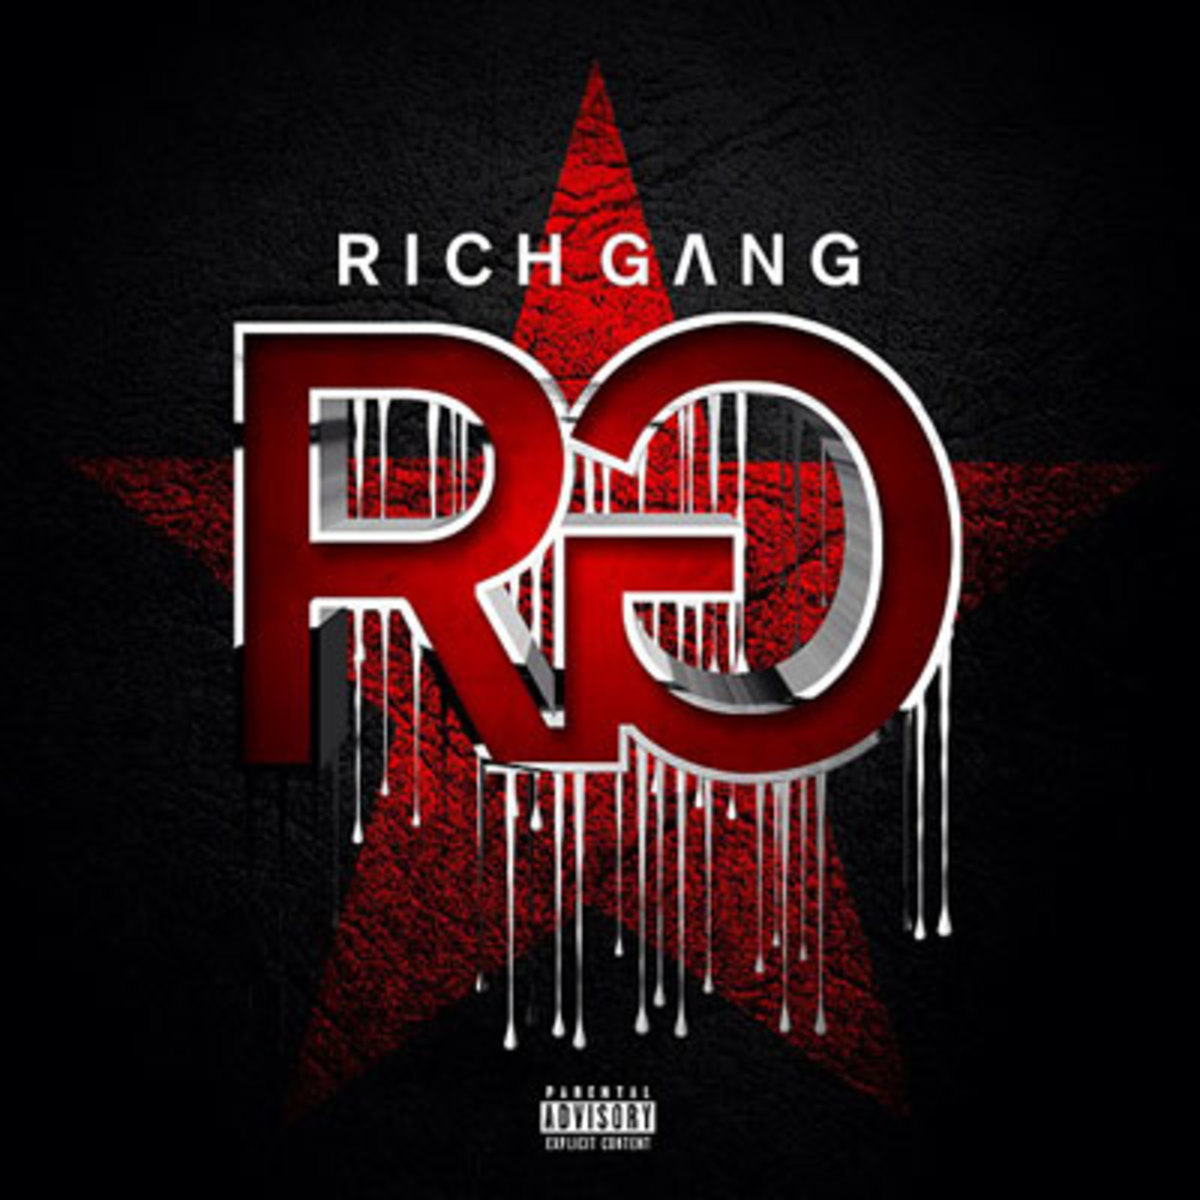 richgang-album.jpg